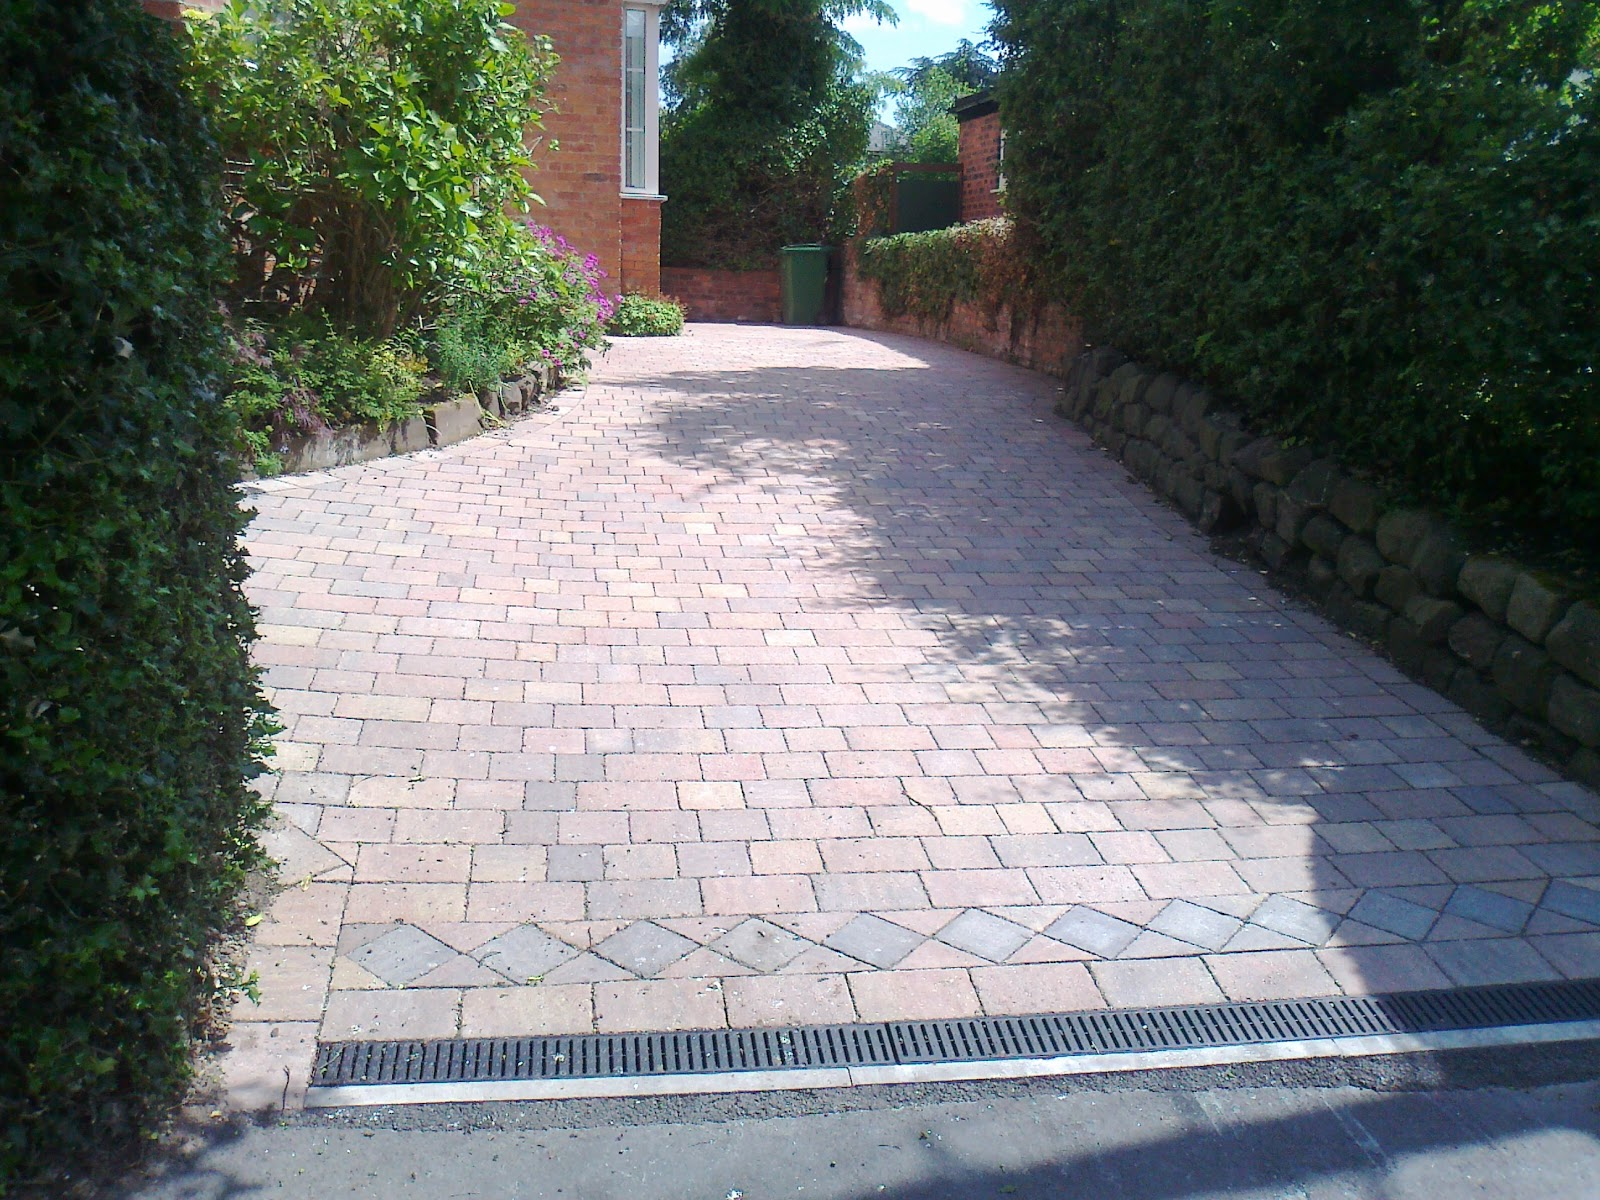 Sale Fencing and Surfacing Ltd - driveways Manchester: Driveways